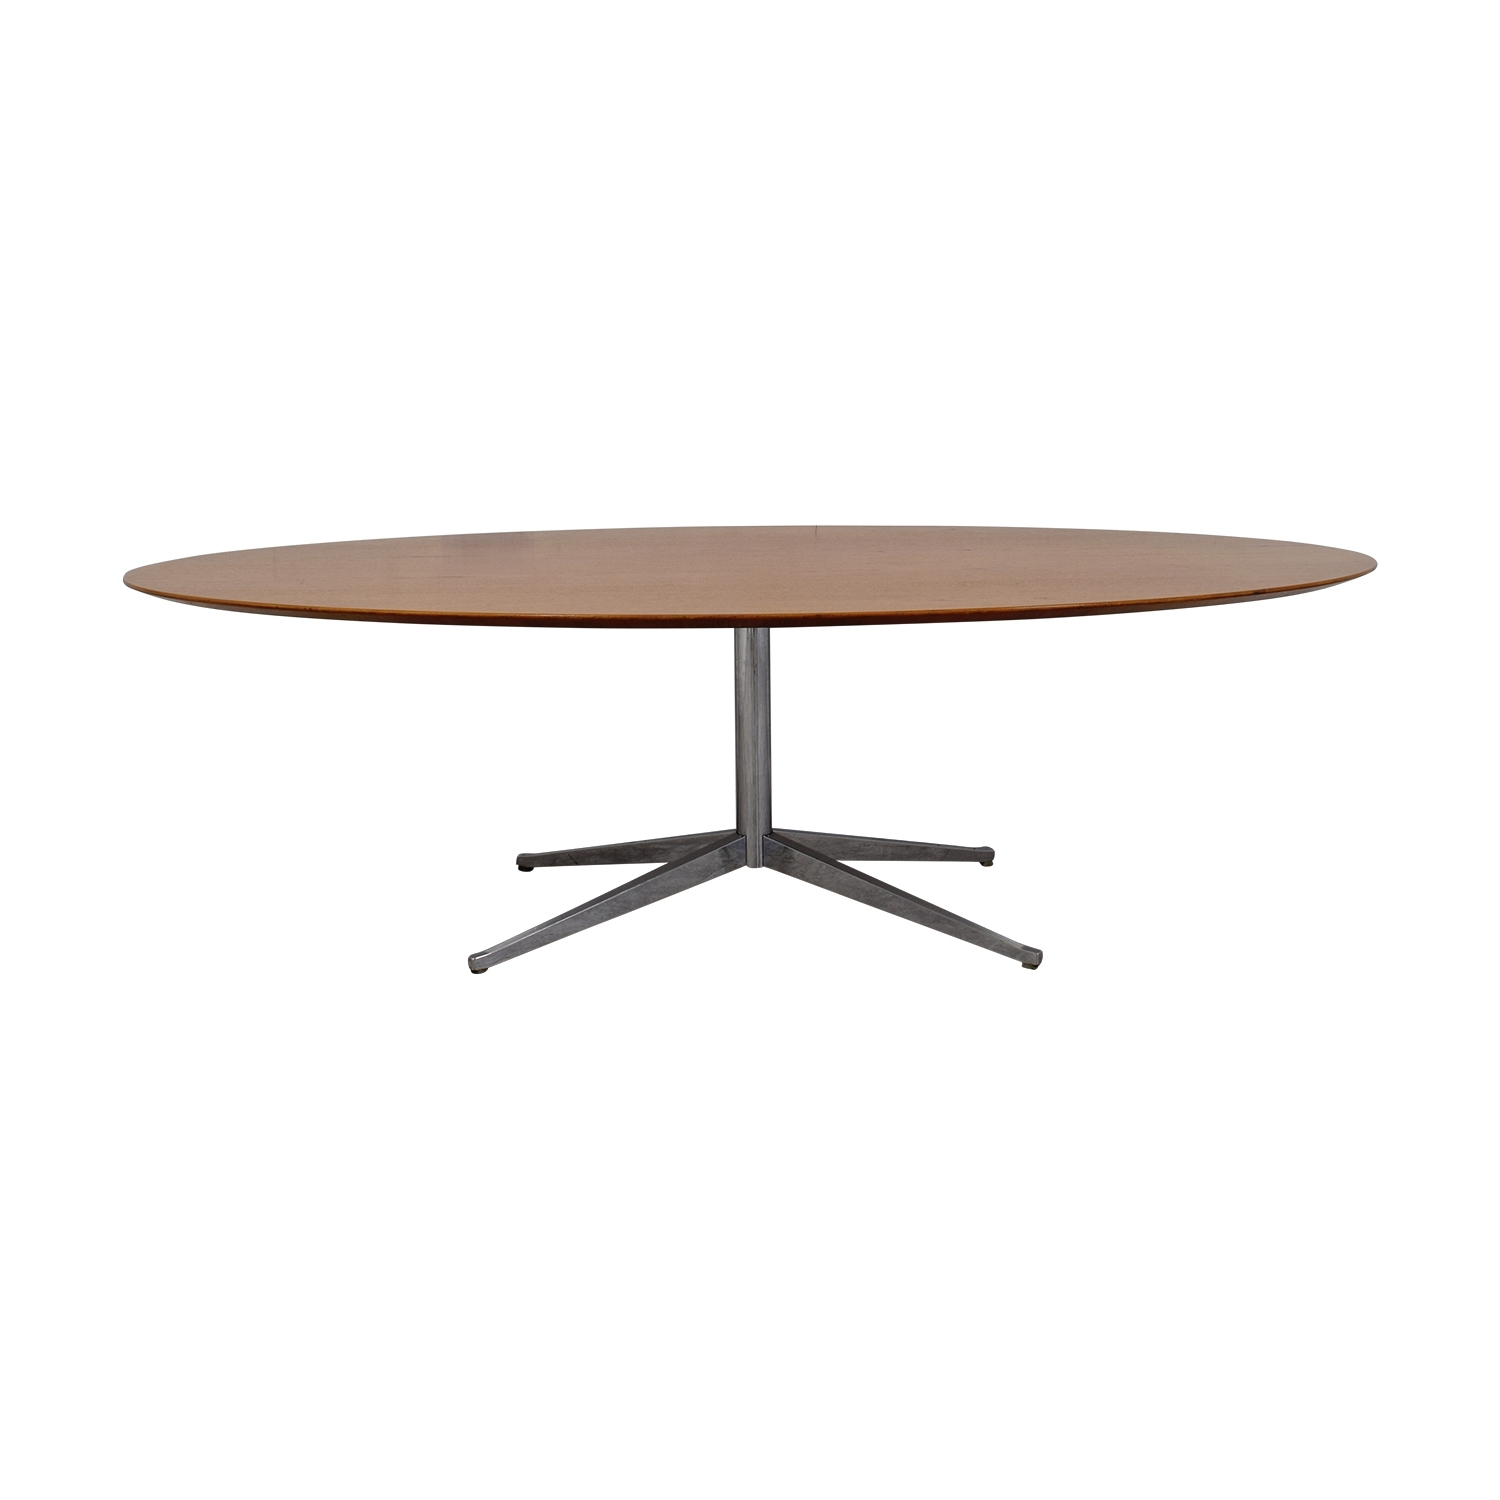 [%71% Off – Knoll Knoll Florence Oval Dining Table / Tables Inside Famous Oval Dining Tables For Sale|Oval Dining Tables For Sale Intended For Well Known 71% Off – Knoll Knoll Florence Oval Dining Table / Tables|Most Current Oval Dining Tables For Sale Inside 71% Off – Knoll Knoll Florence Oval Dining Table / Tables|Widely Used 71% Off – Knoll Knoll Florence Oval Dining Table / Tables Within Oval Dining Tables For Sale%] (View 15 of 25)